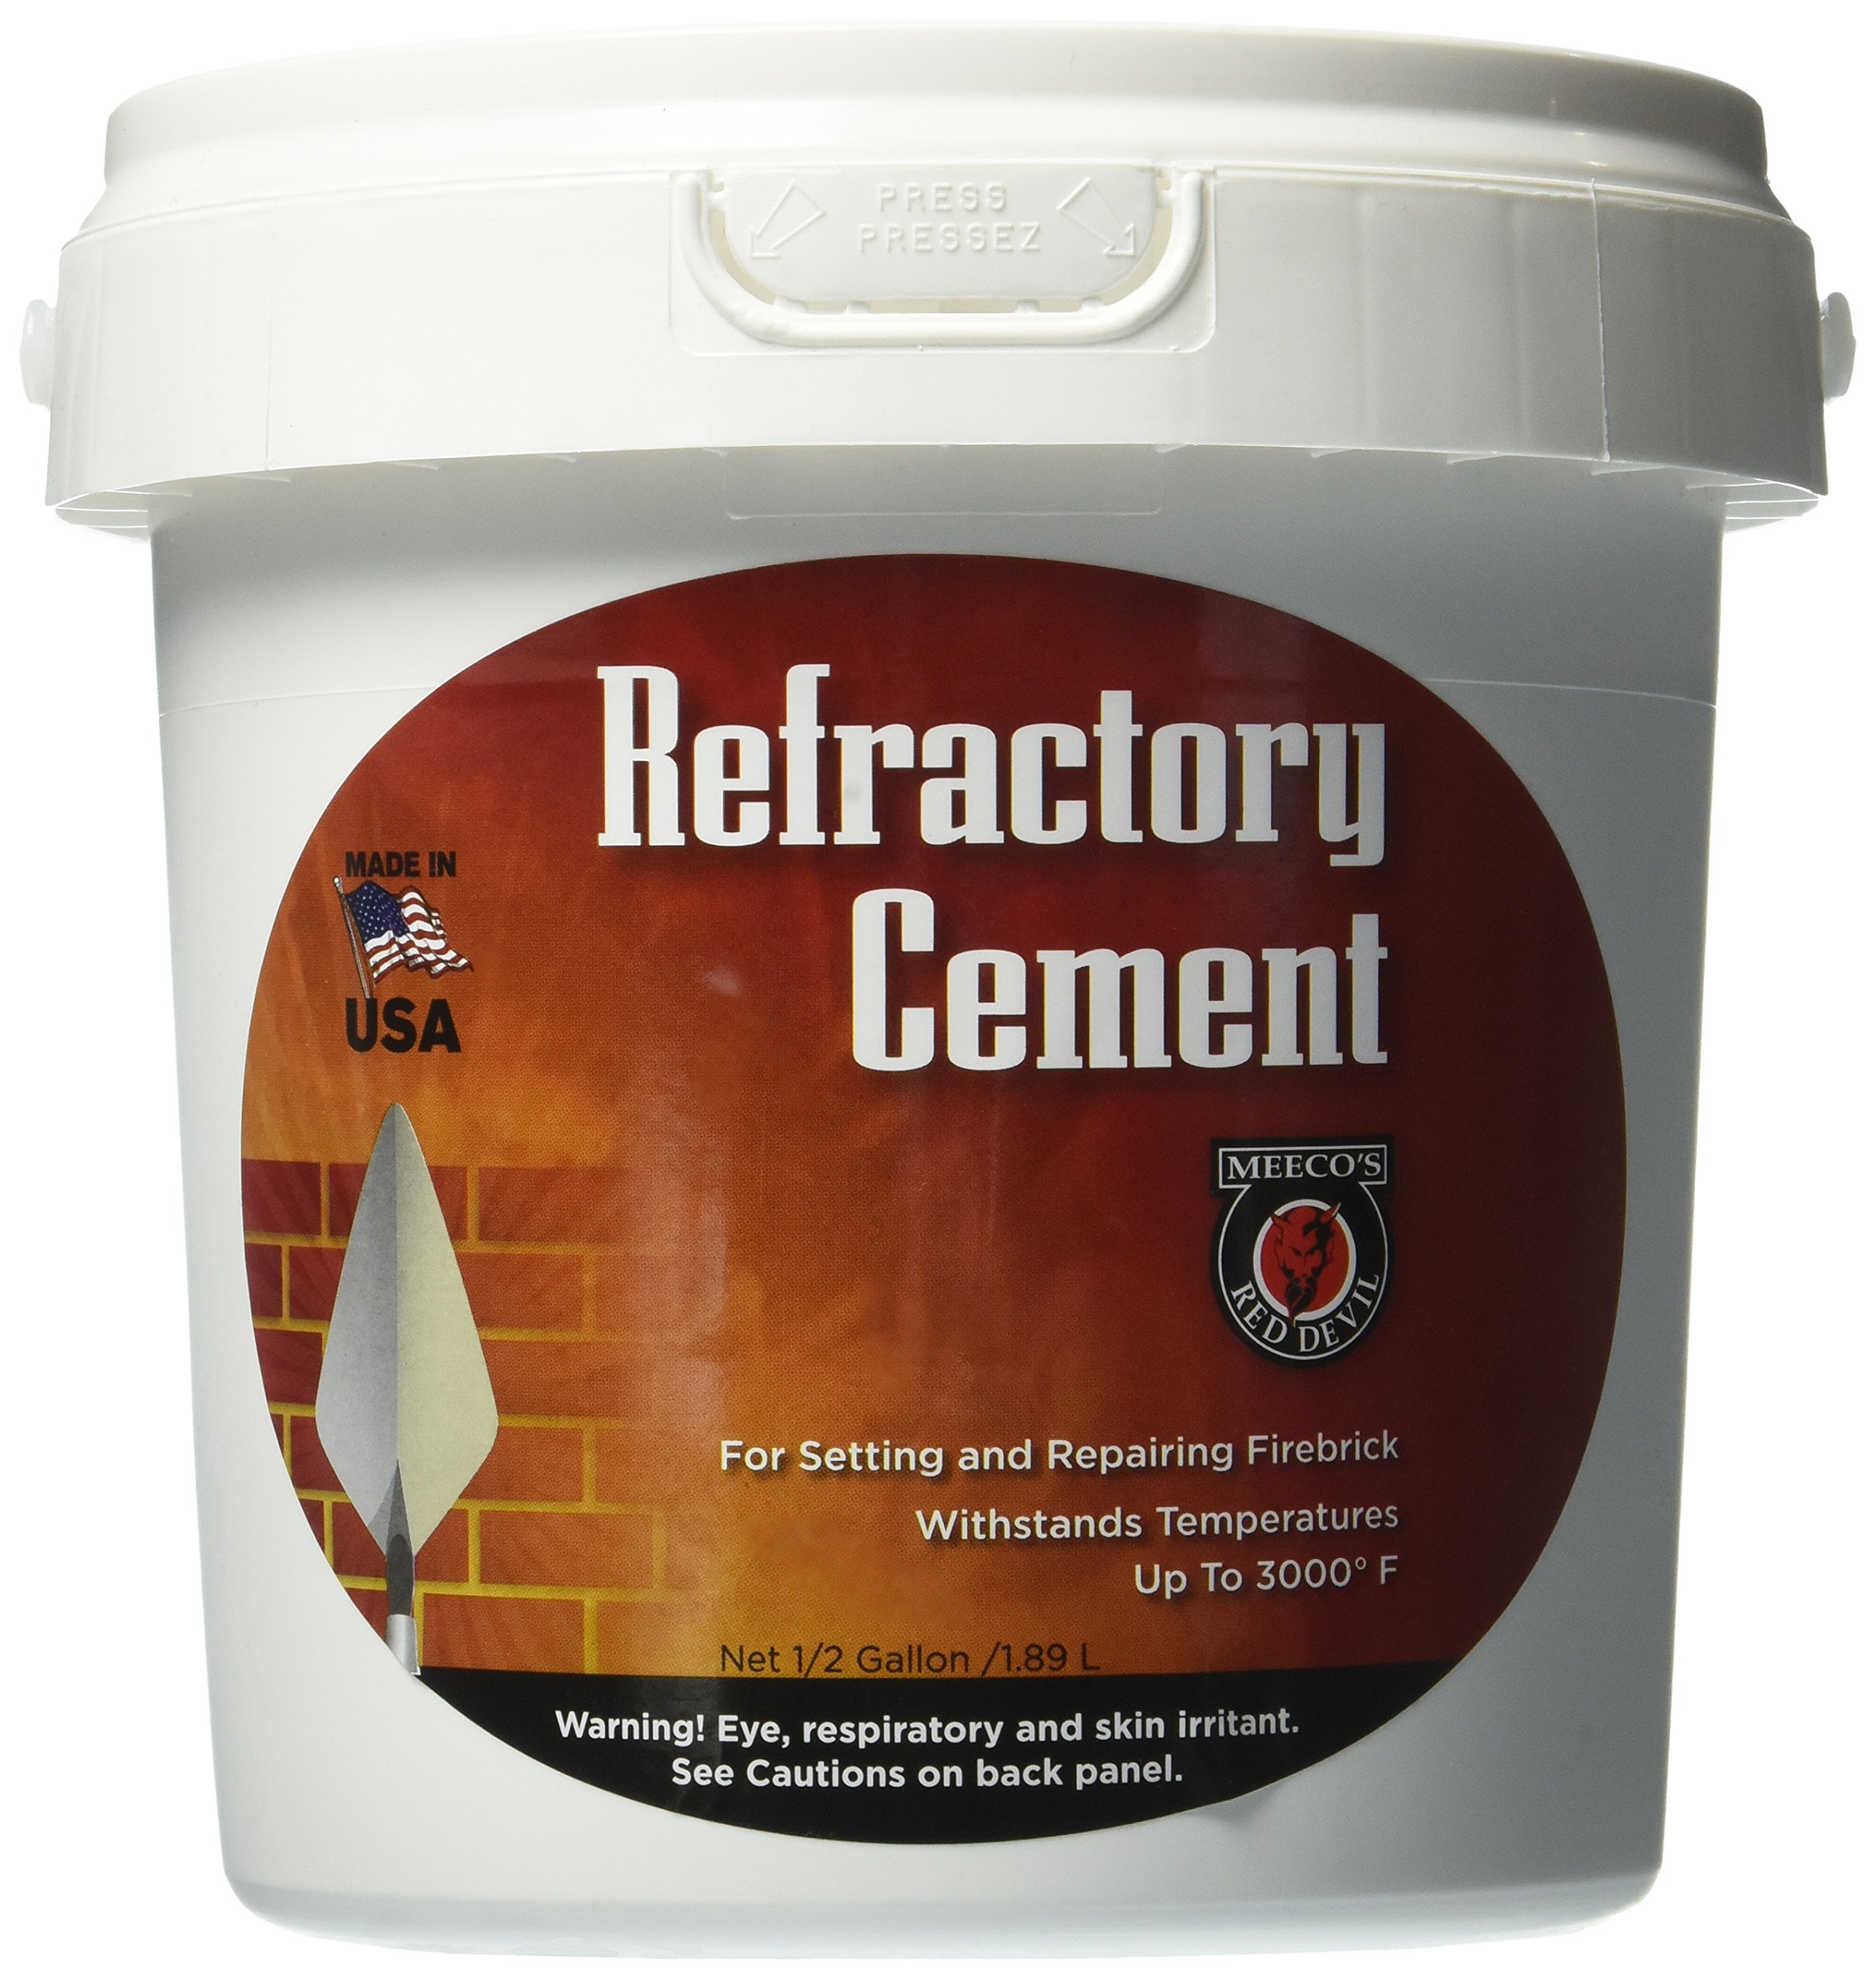 MEECO'S RED DEVIL 610 Refractory Cement - Indoor Use Only by MEECO'S RED DEVIL